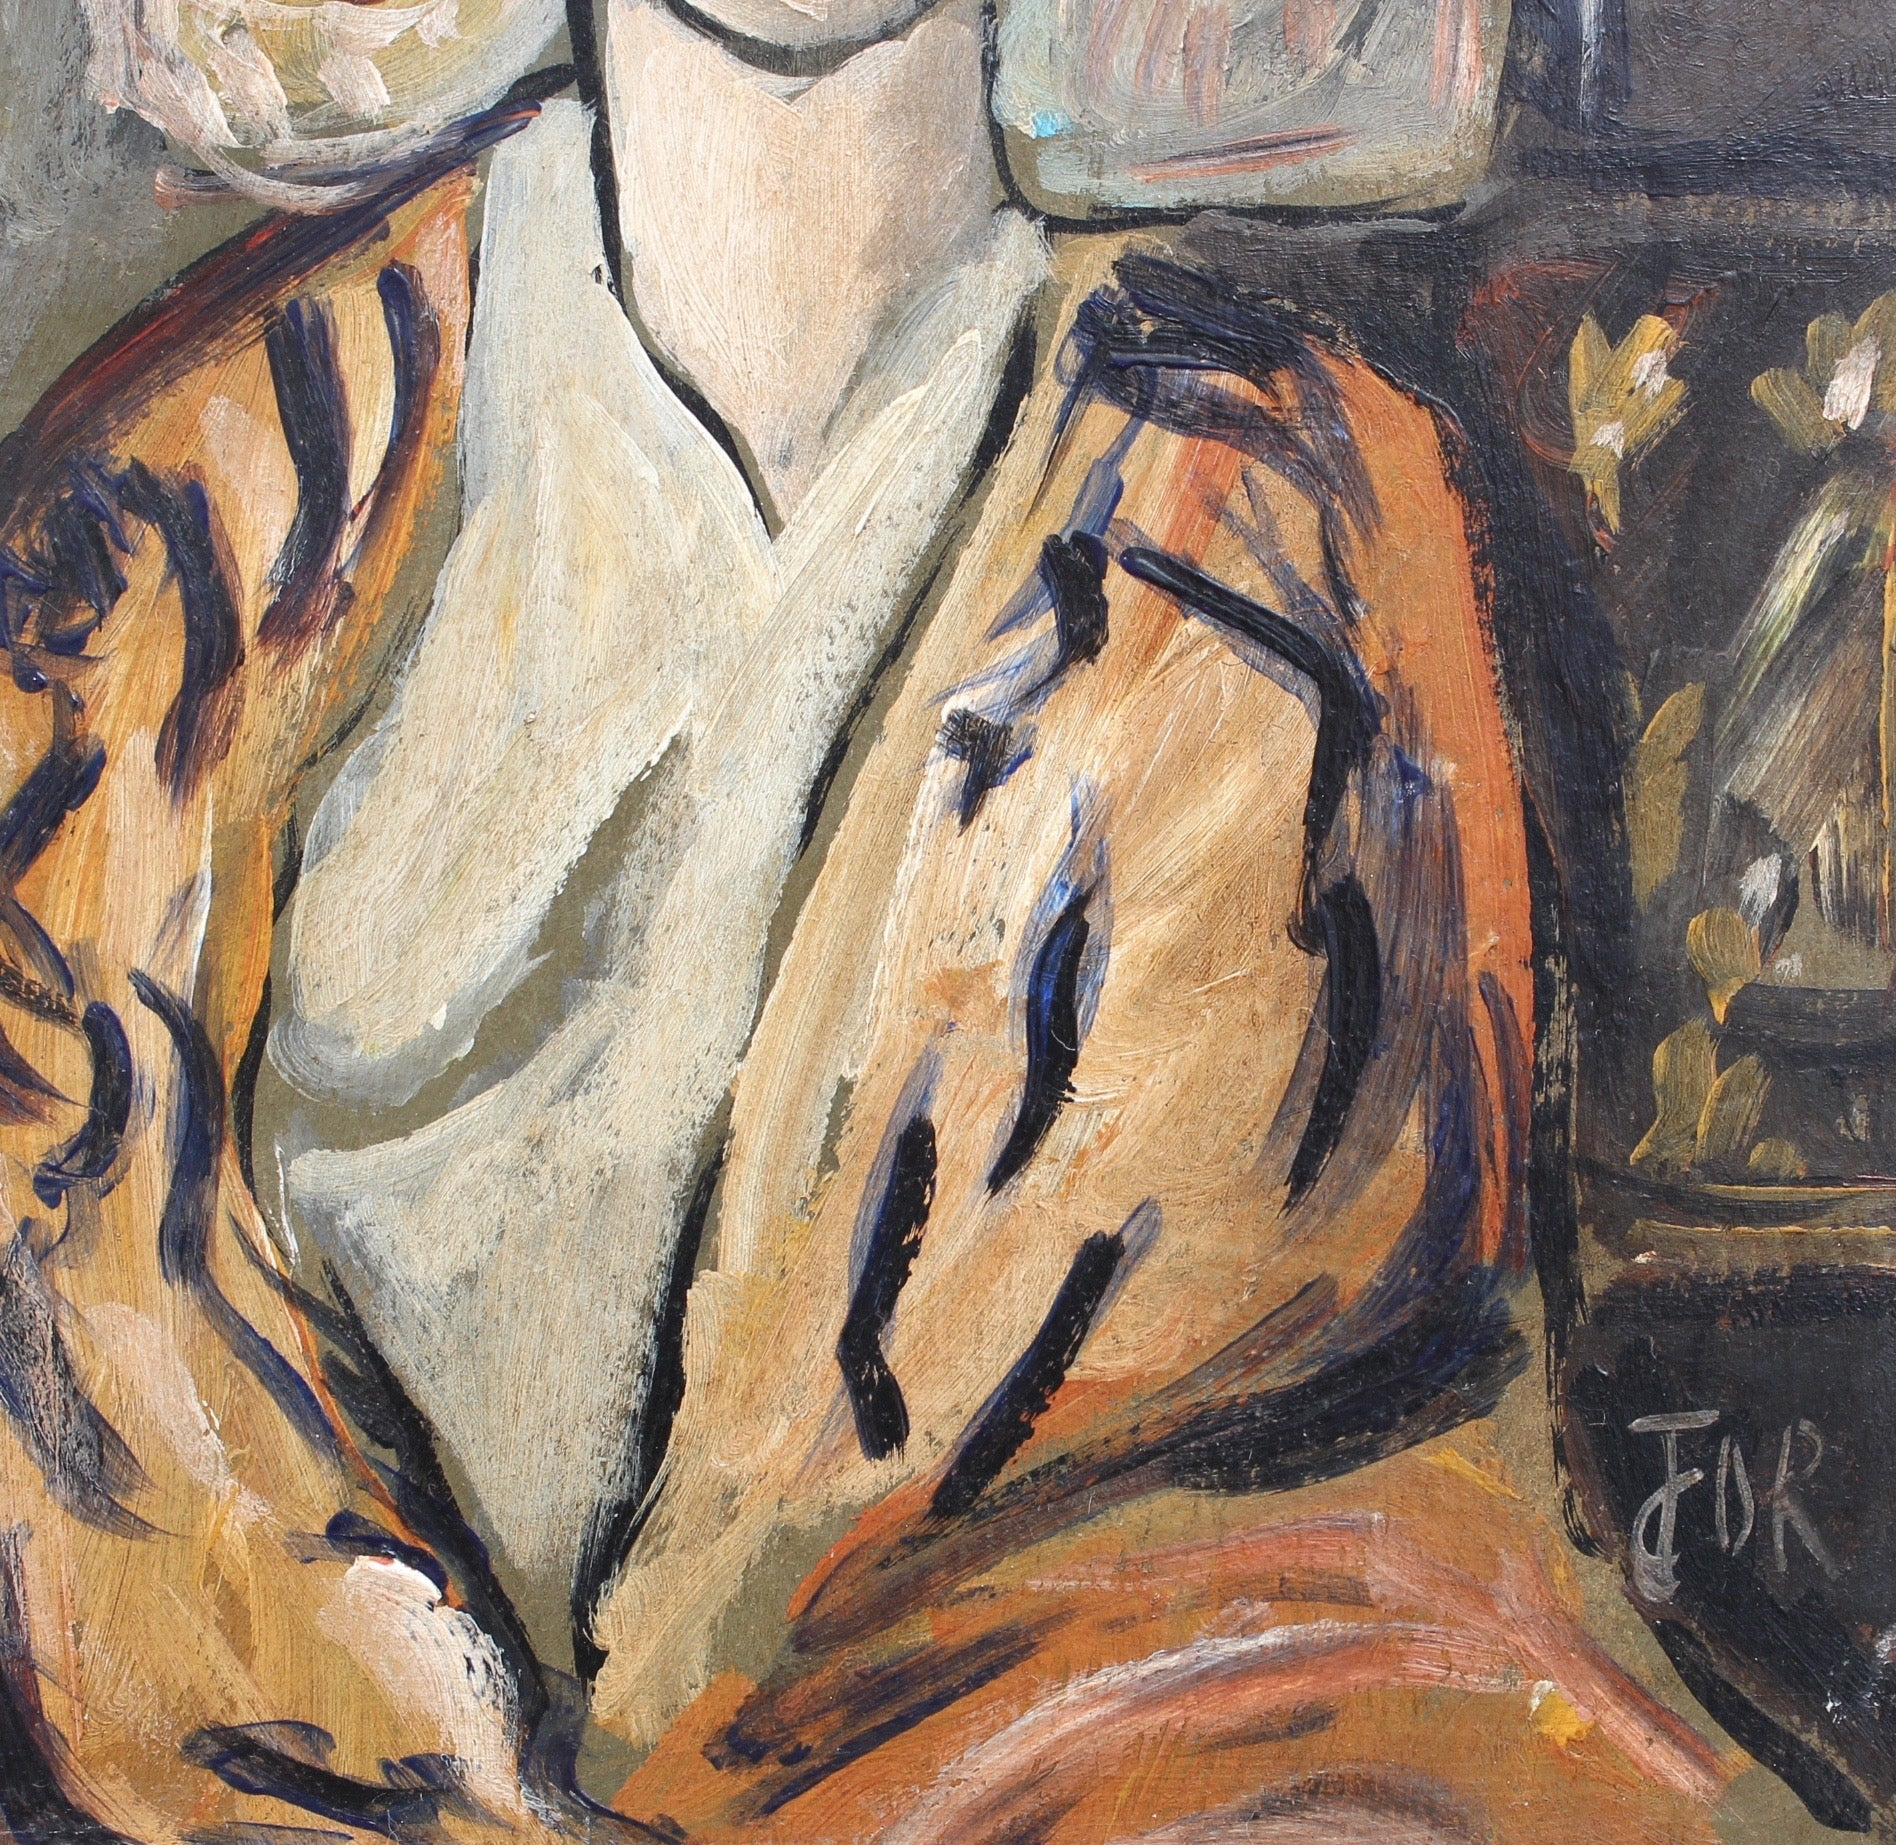 'Flowered Woman in Robe' by Unknown Artist (circa 1940s - 1950s)